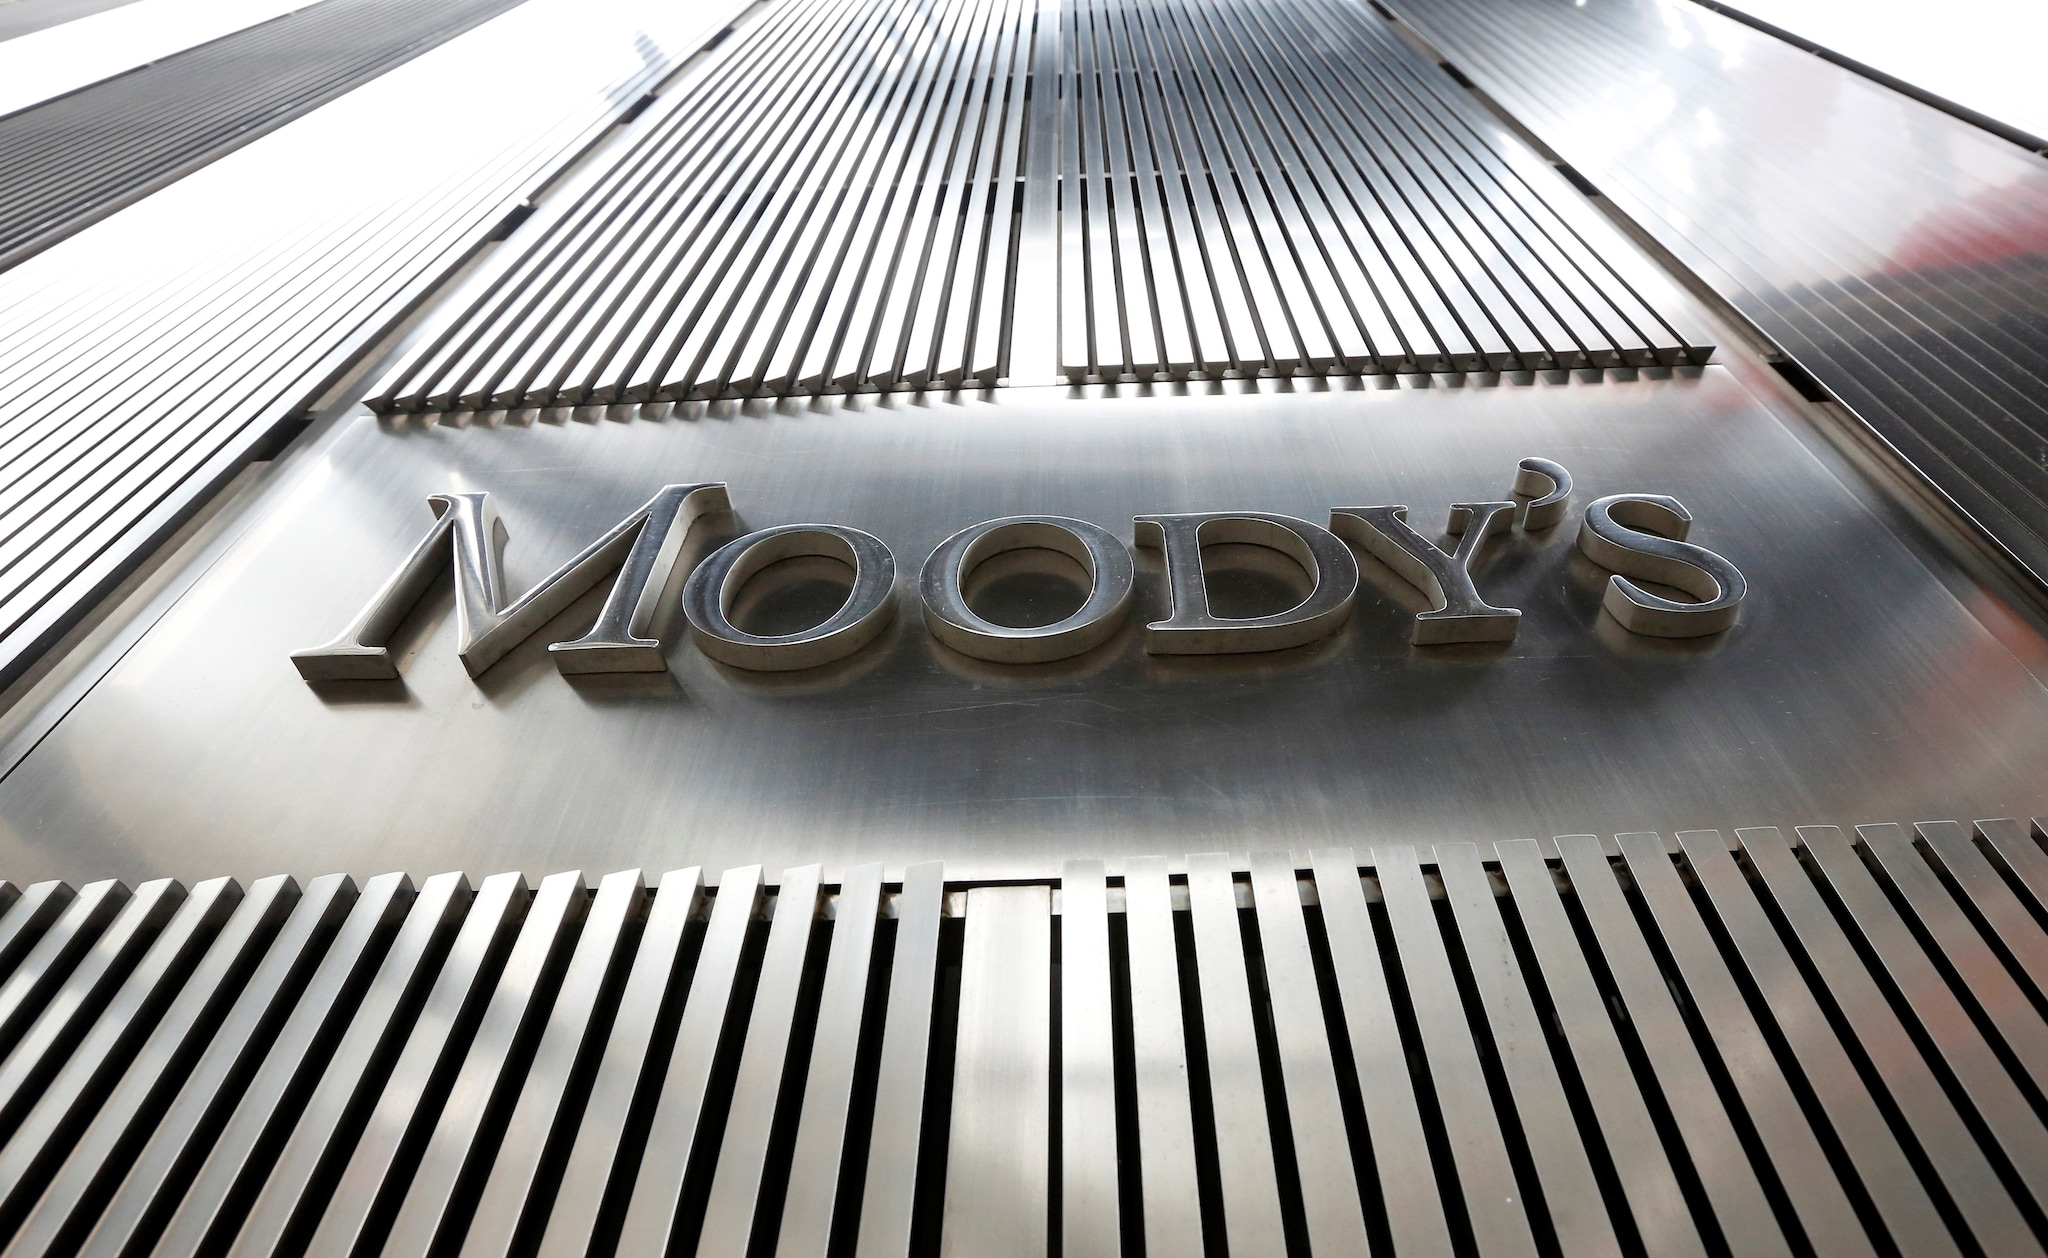 10. Moody's On New Government Policies: India's credit rating will depend on the policies of the new government, Moody's said Thursday and expressed hope that the country would continue with its fiscal consolidation plan.